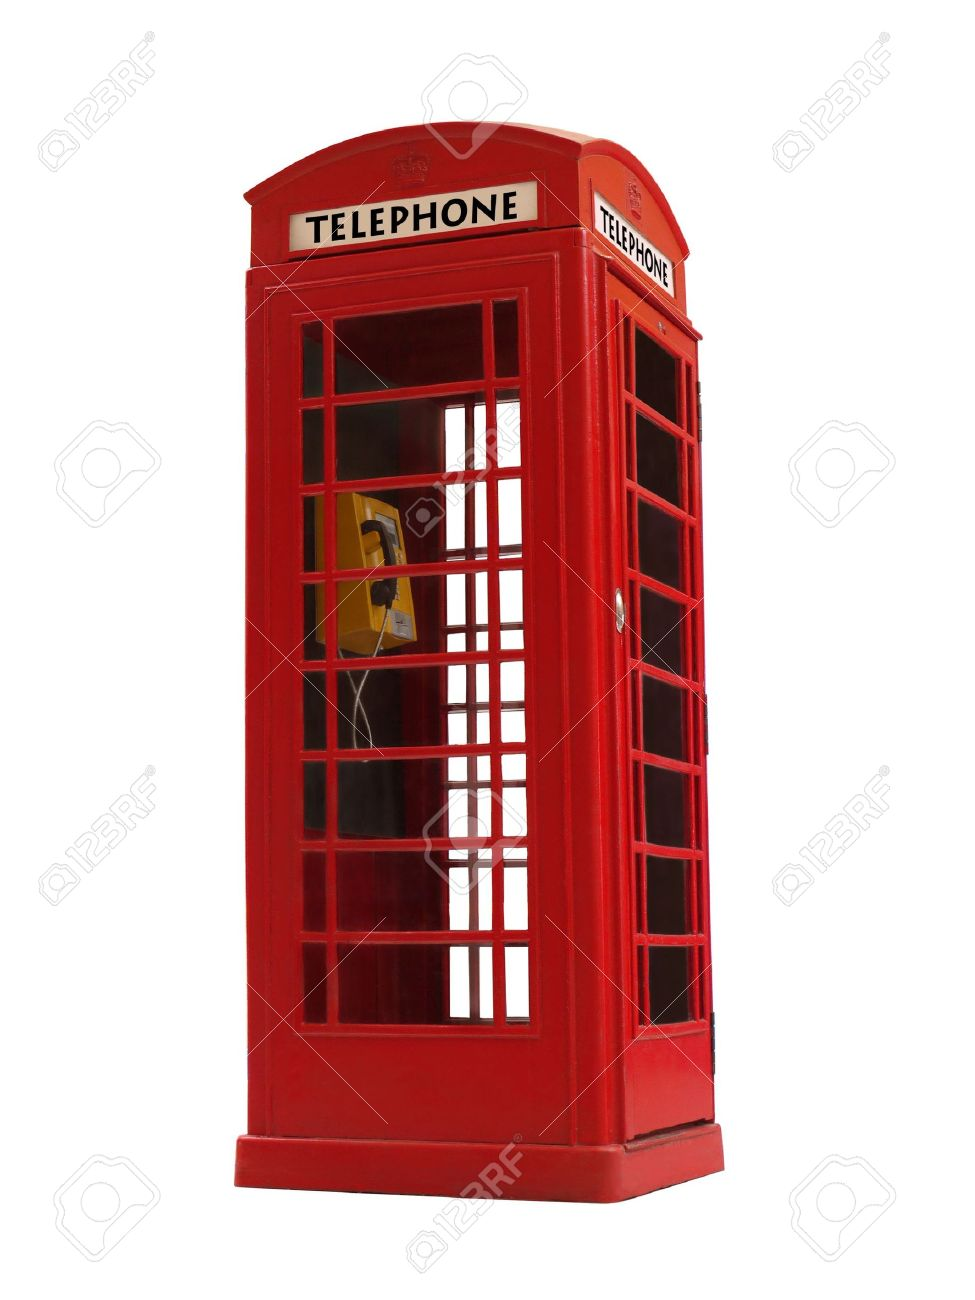 London style red public telephone booth isolated on white Stock Photo - 4835958